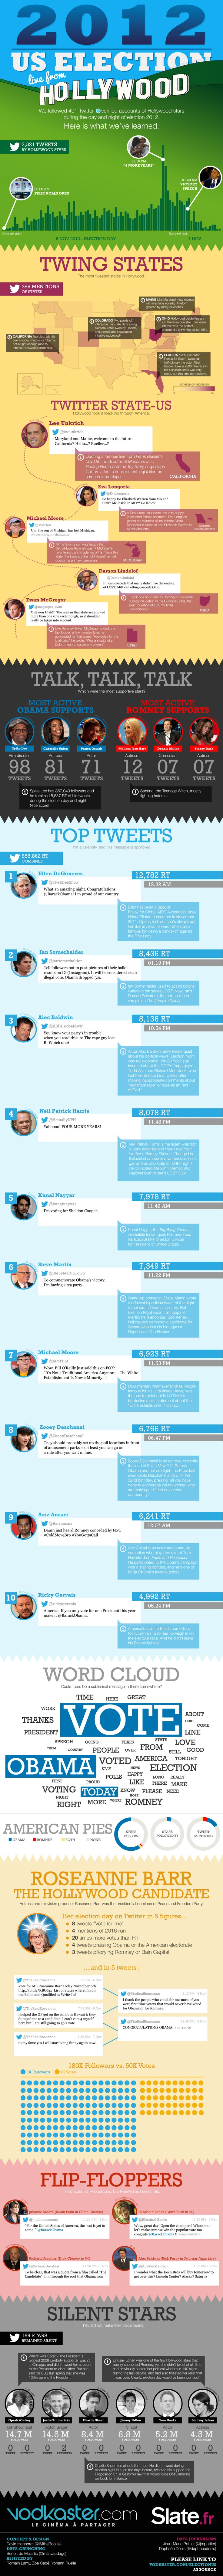 US Election 2012 Seen From Hollywood - #movies #politics #infographic #Hollywood #twitter #people #election2012